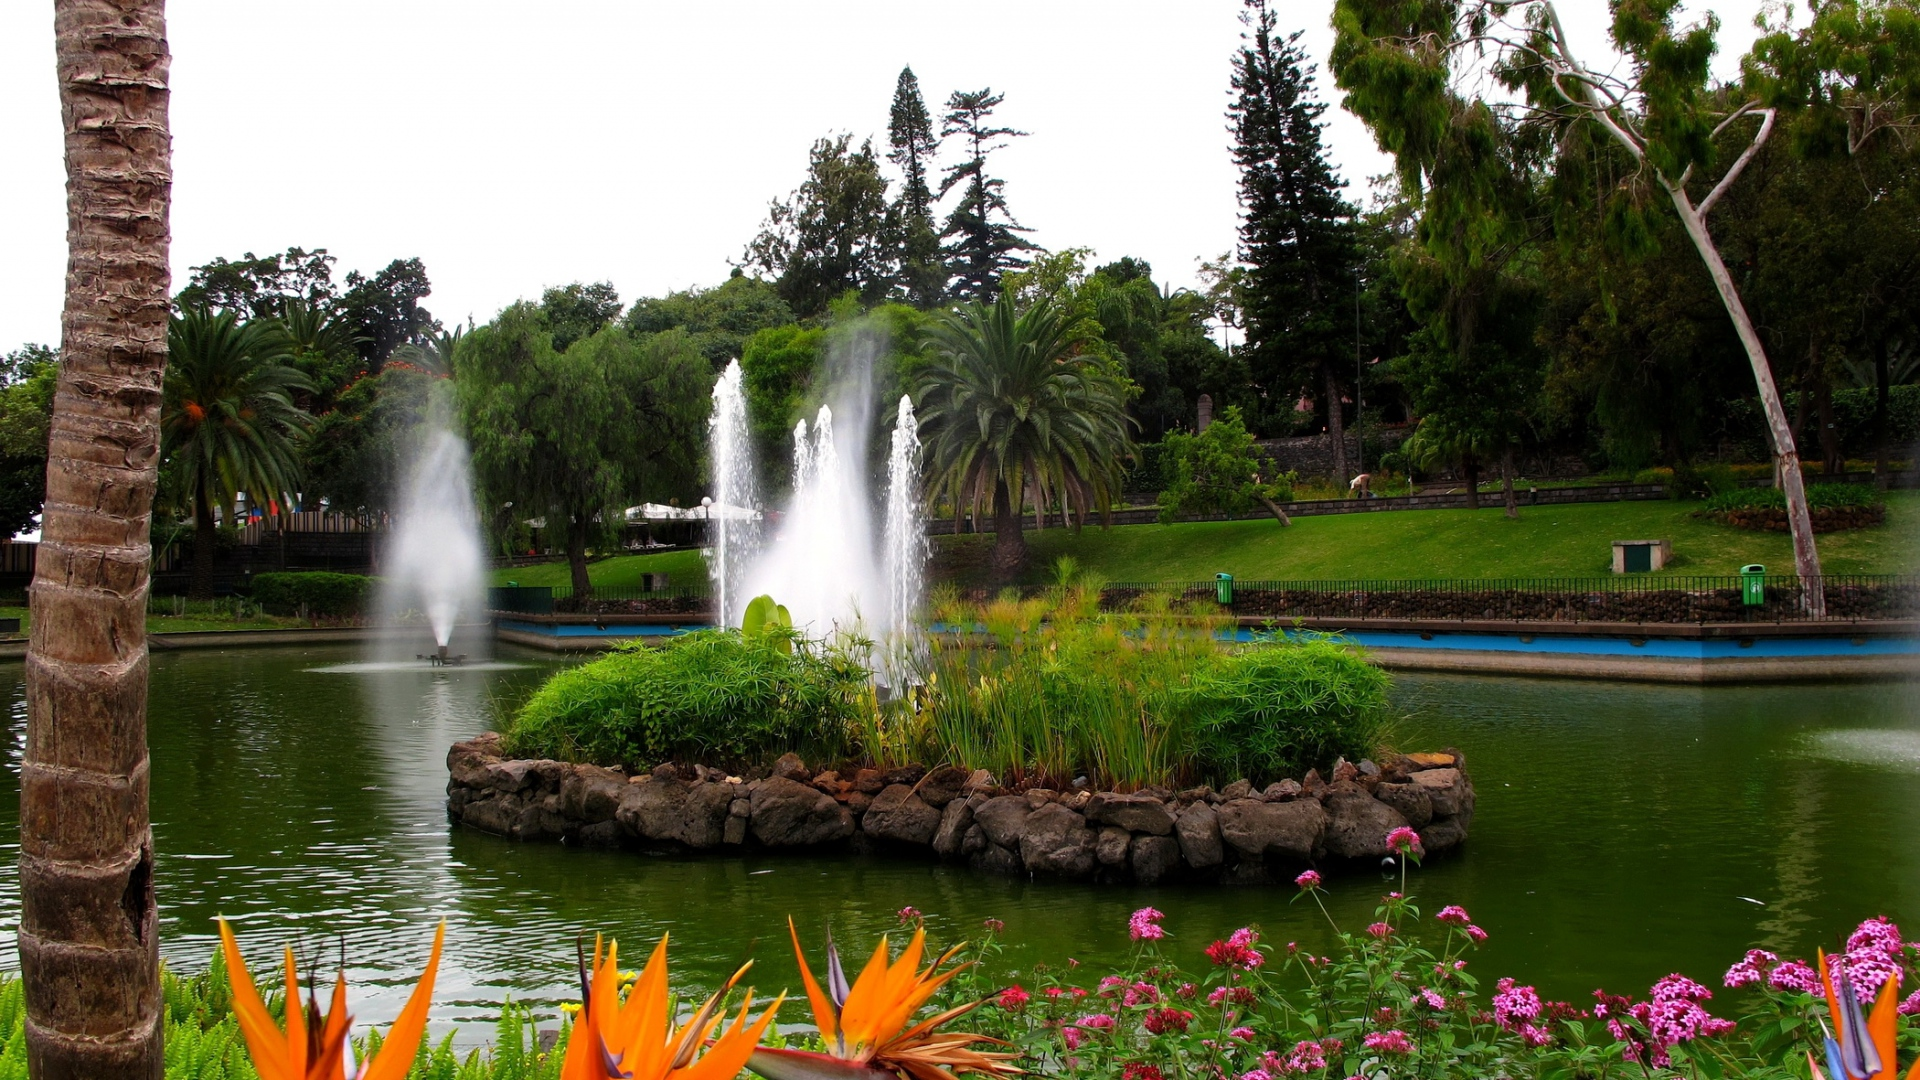 Download Wallpaper 1920x1080 Fountain Pond Garden Registration Flowers Yellow Brightly Full HD 1080p Background